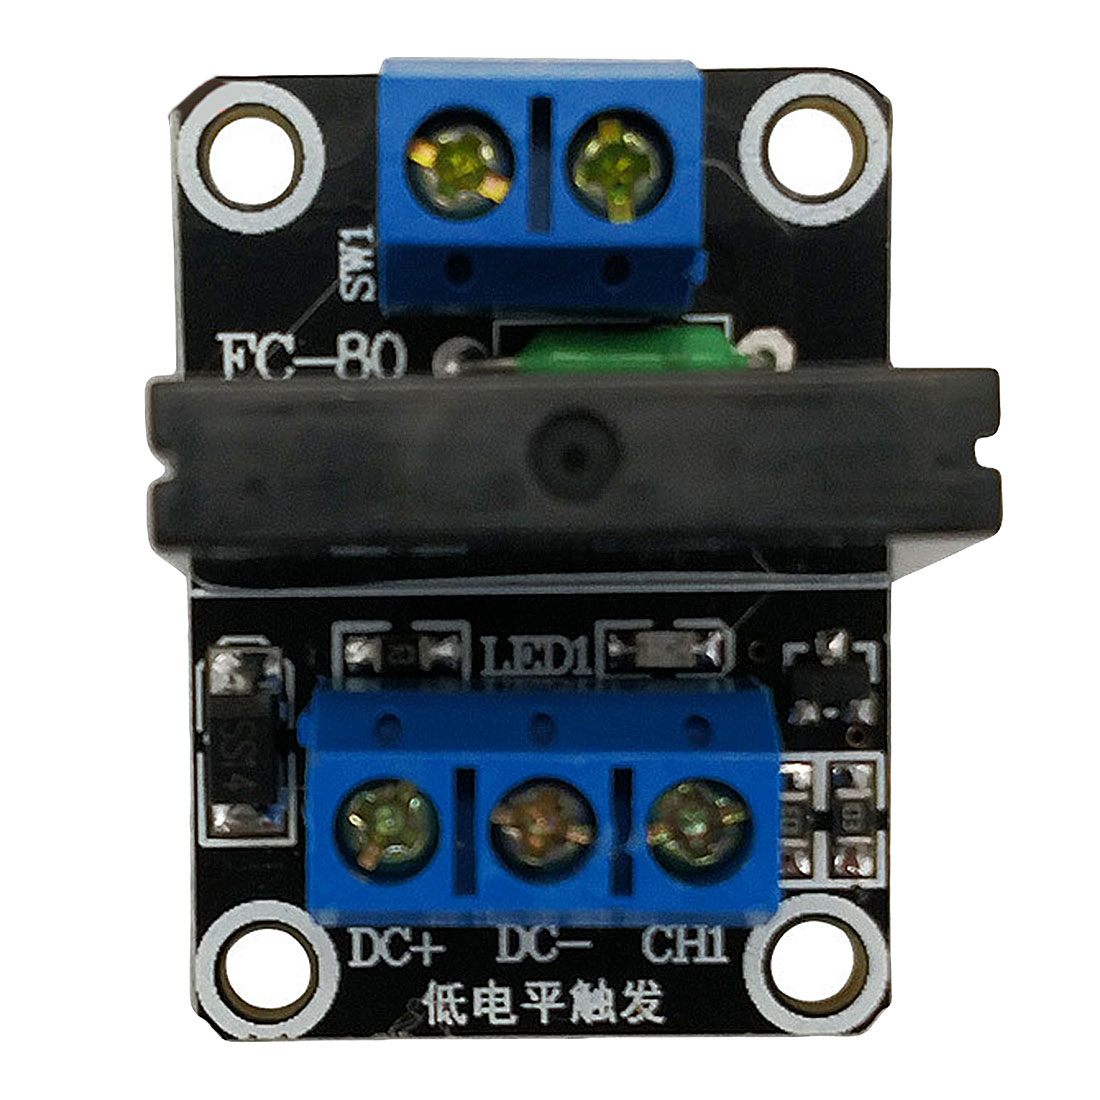 Smart Electronics 1 Channel <font><b>5</b></font>/12/24V DC Relay Module Solid State High/Low Level G3MB-202P Relay SSR AVR DSP for arduino <font><b>Diy</b></font> <font><b>Kit</b></font> image